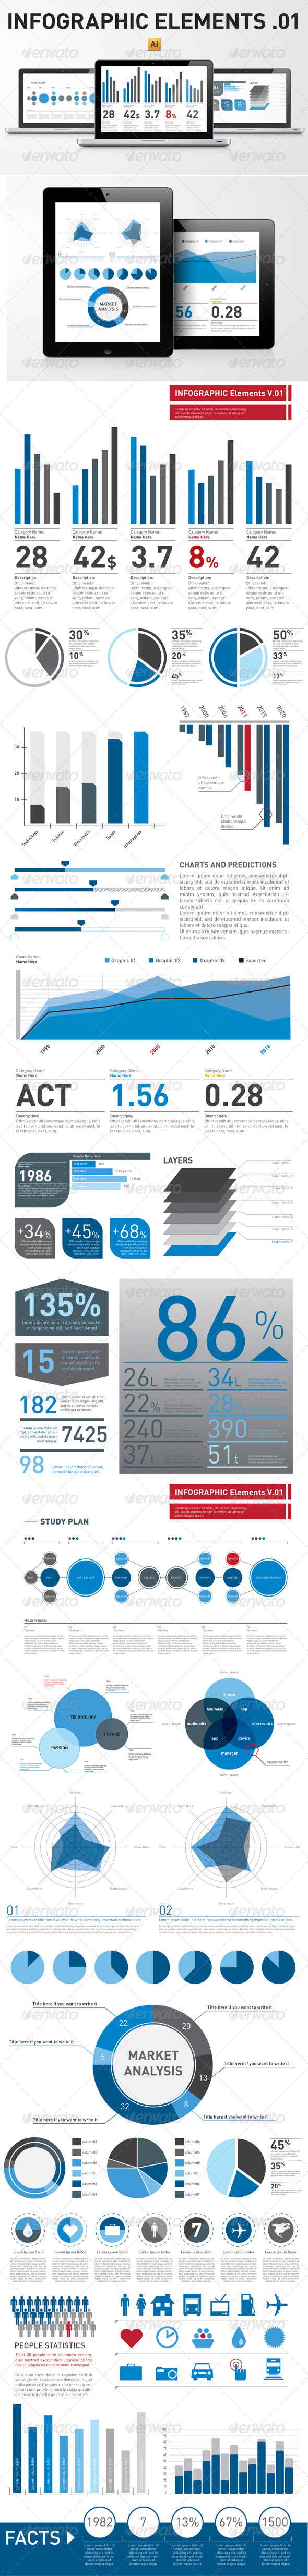 Graphicriver | Infographic Elements Template Pack 01 Free Download free download Graphicriver | Infographic Elements Template Pack 01 Free Download nulled Graphicriver | Infographic Elements Template Pack 01 Free Download